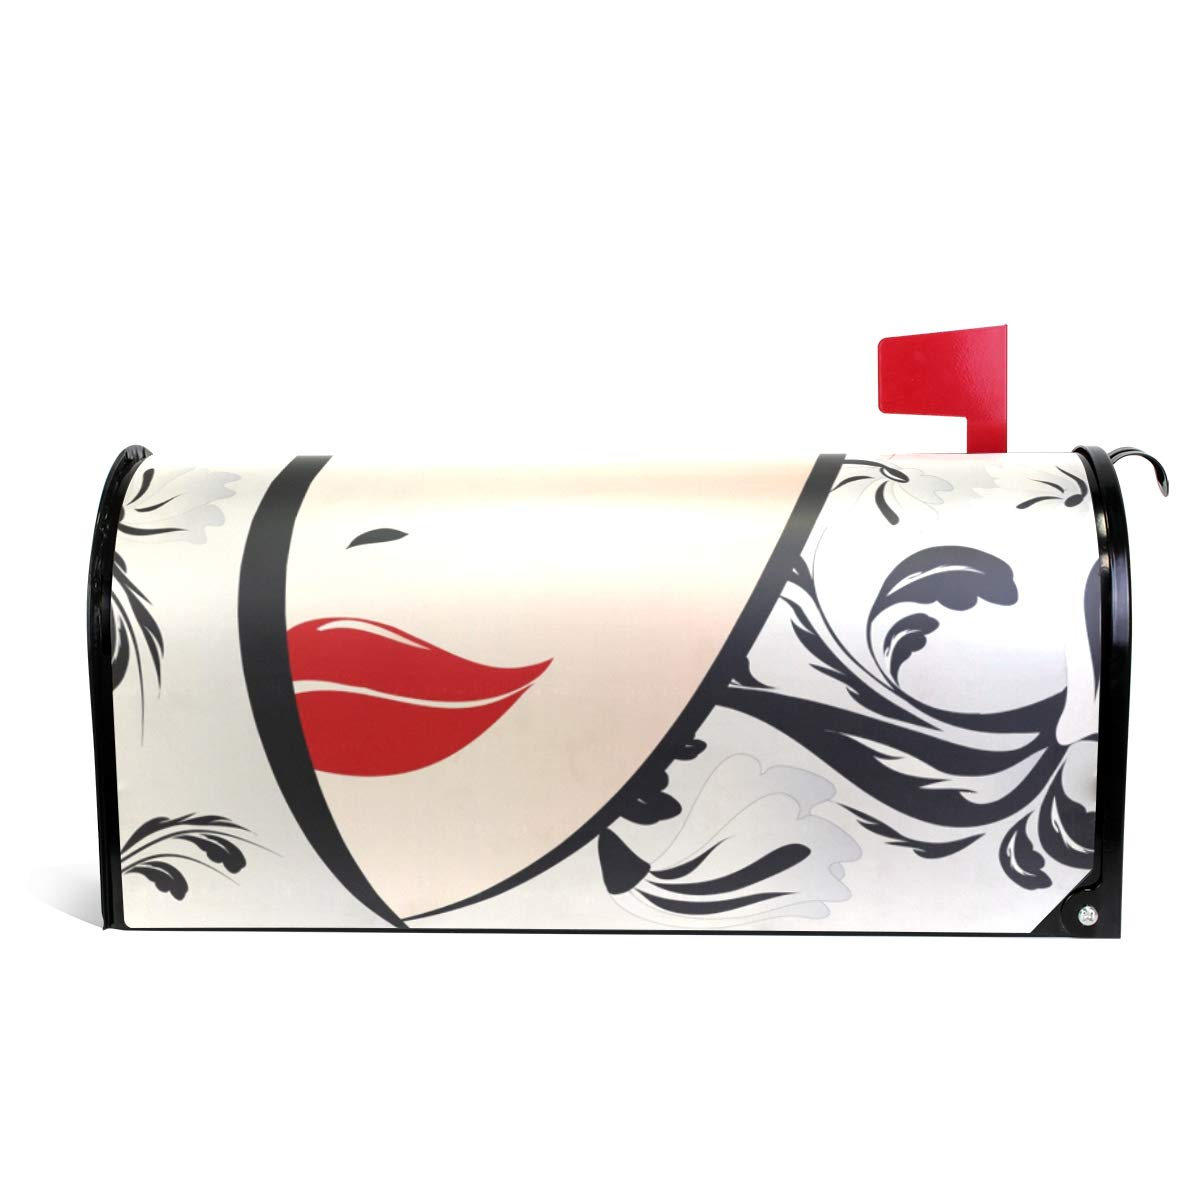 MAPOLO Floral Woman Magnetic Mailbox Cover Oversized